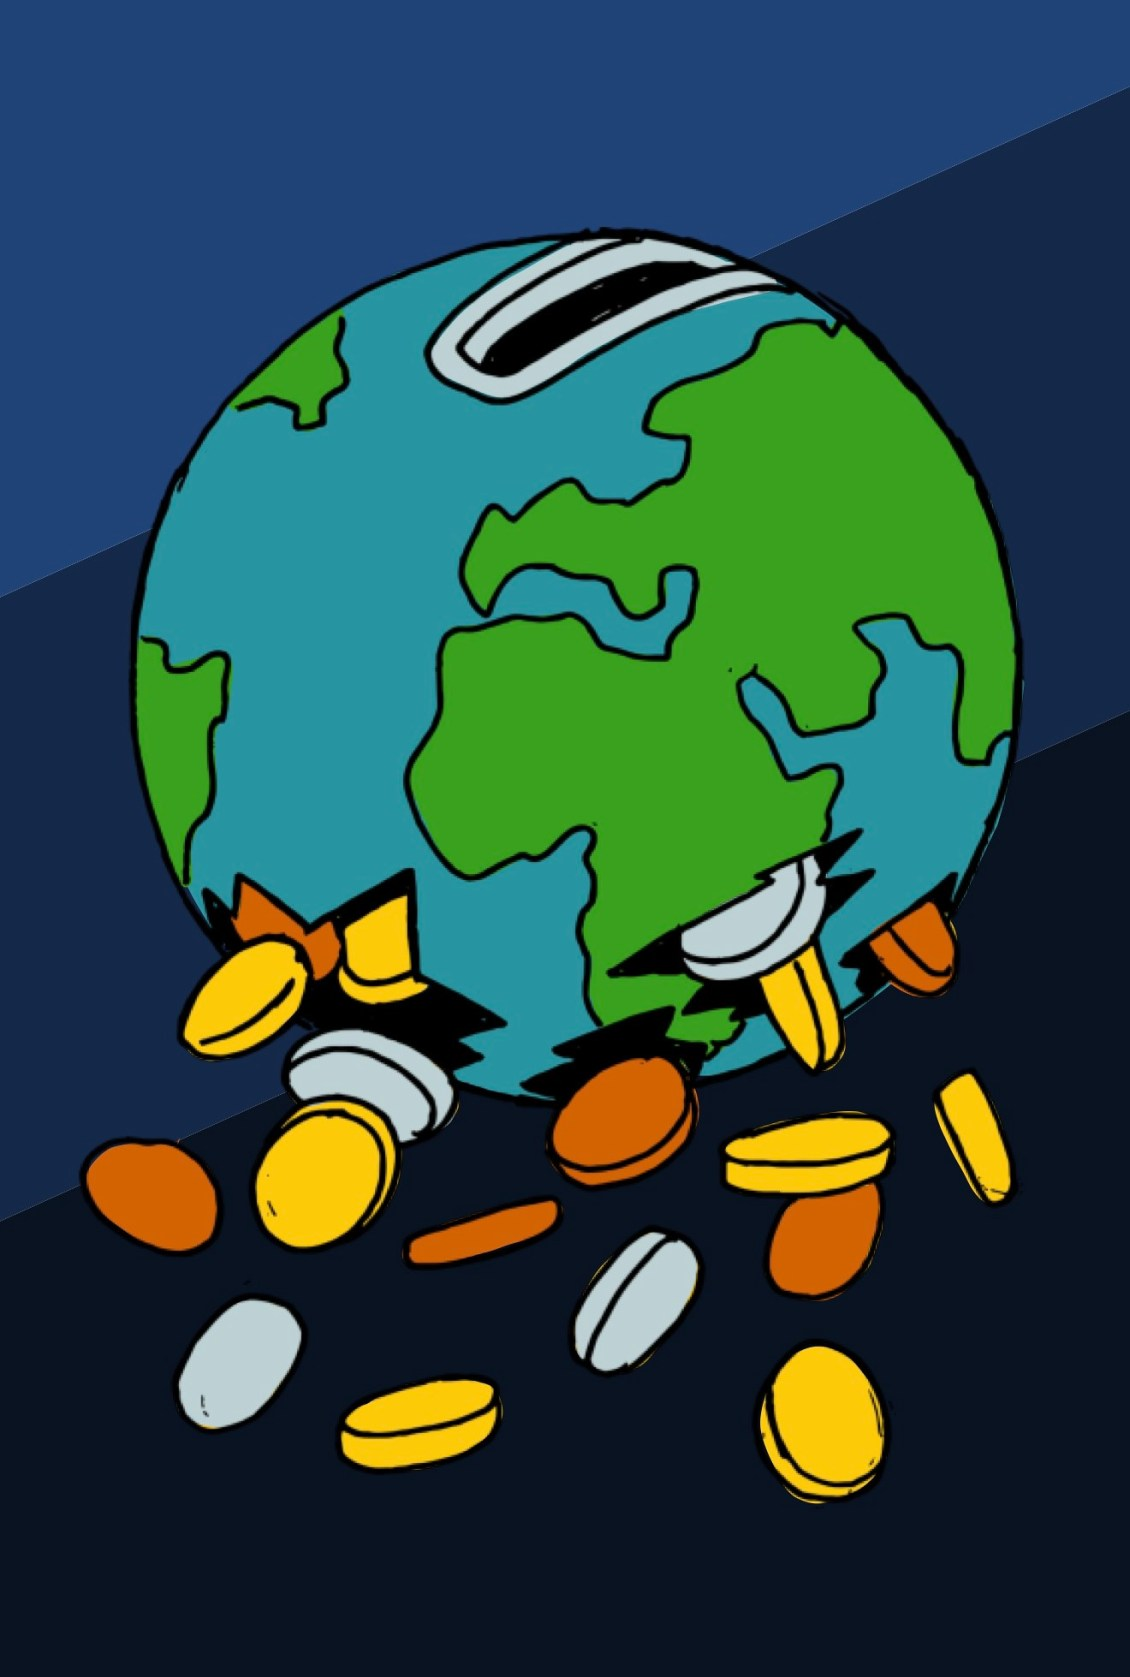 Global recession article Illustration